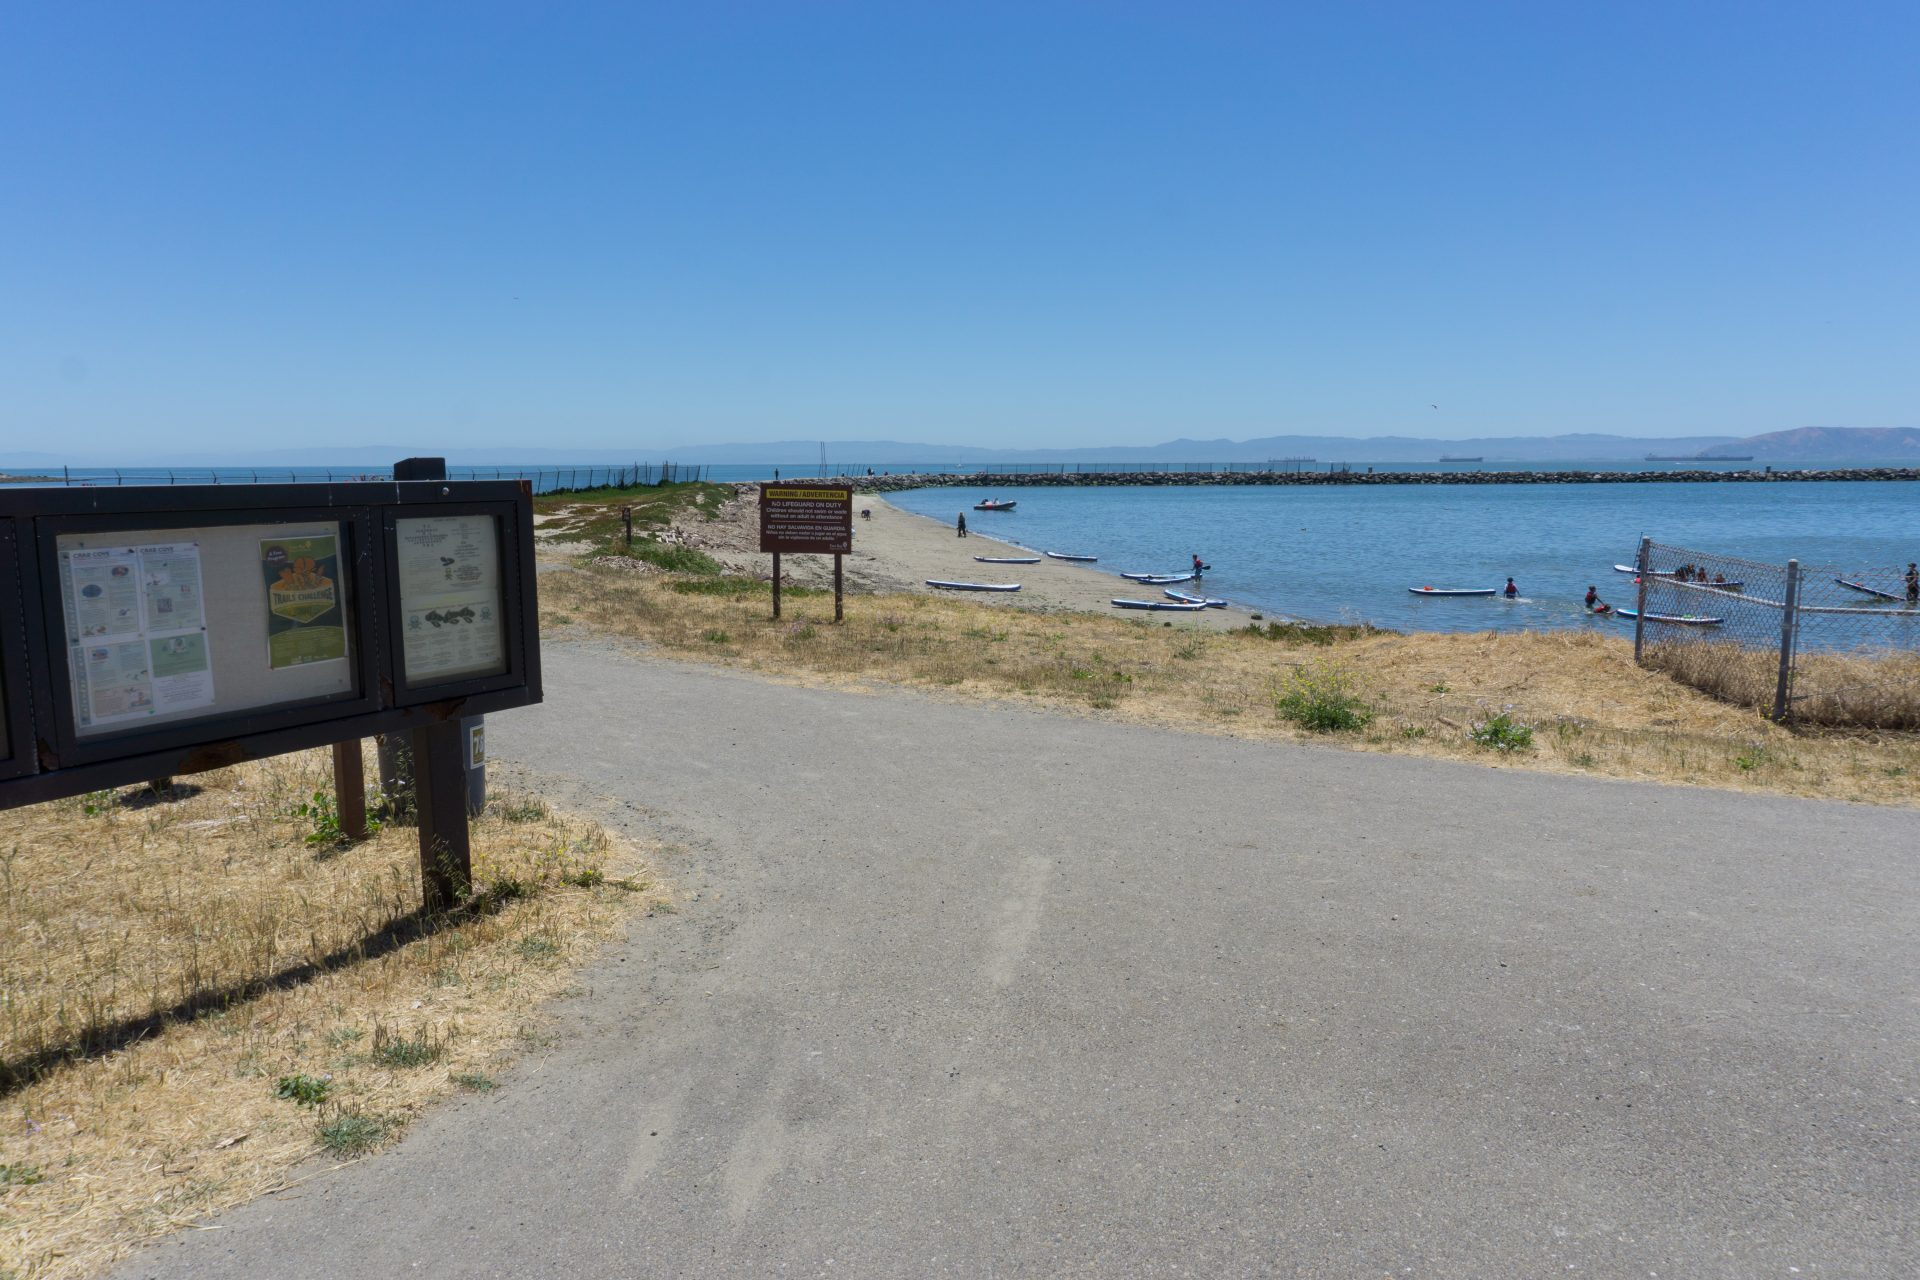 Signage kiosk on left, paved path, water beyond with many paddleboarders